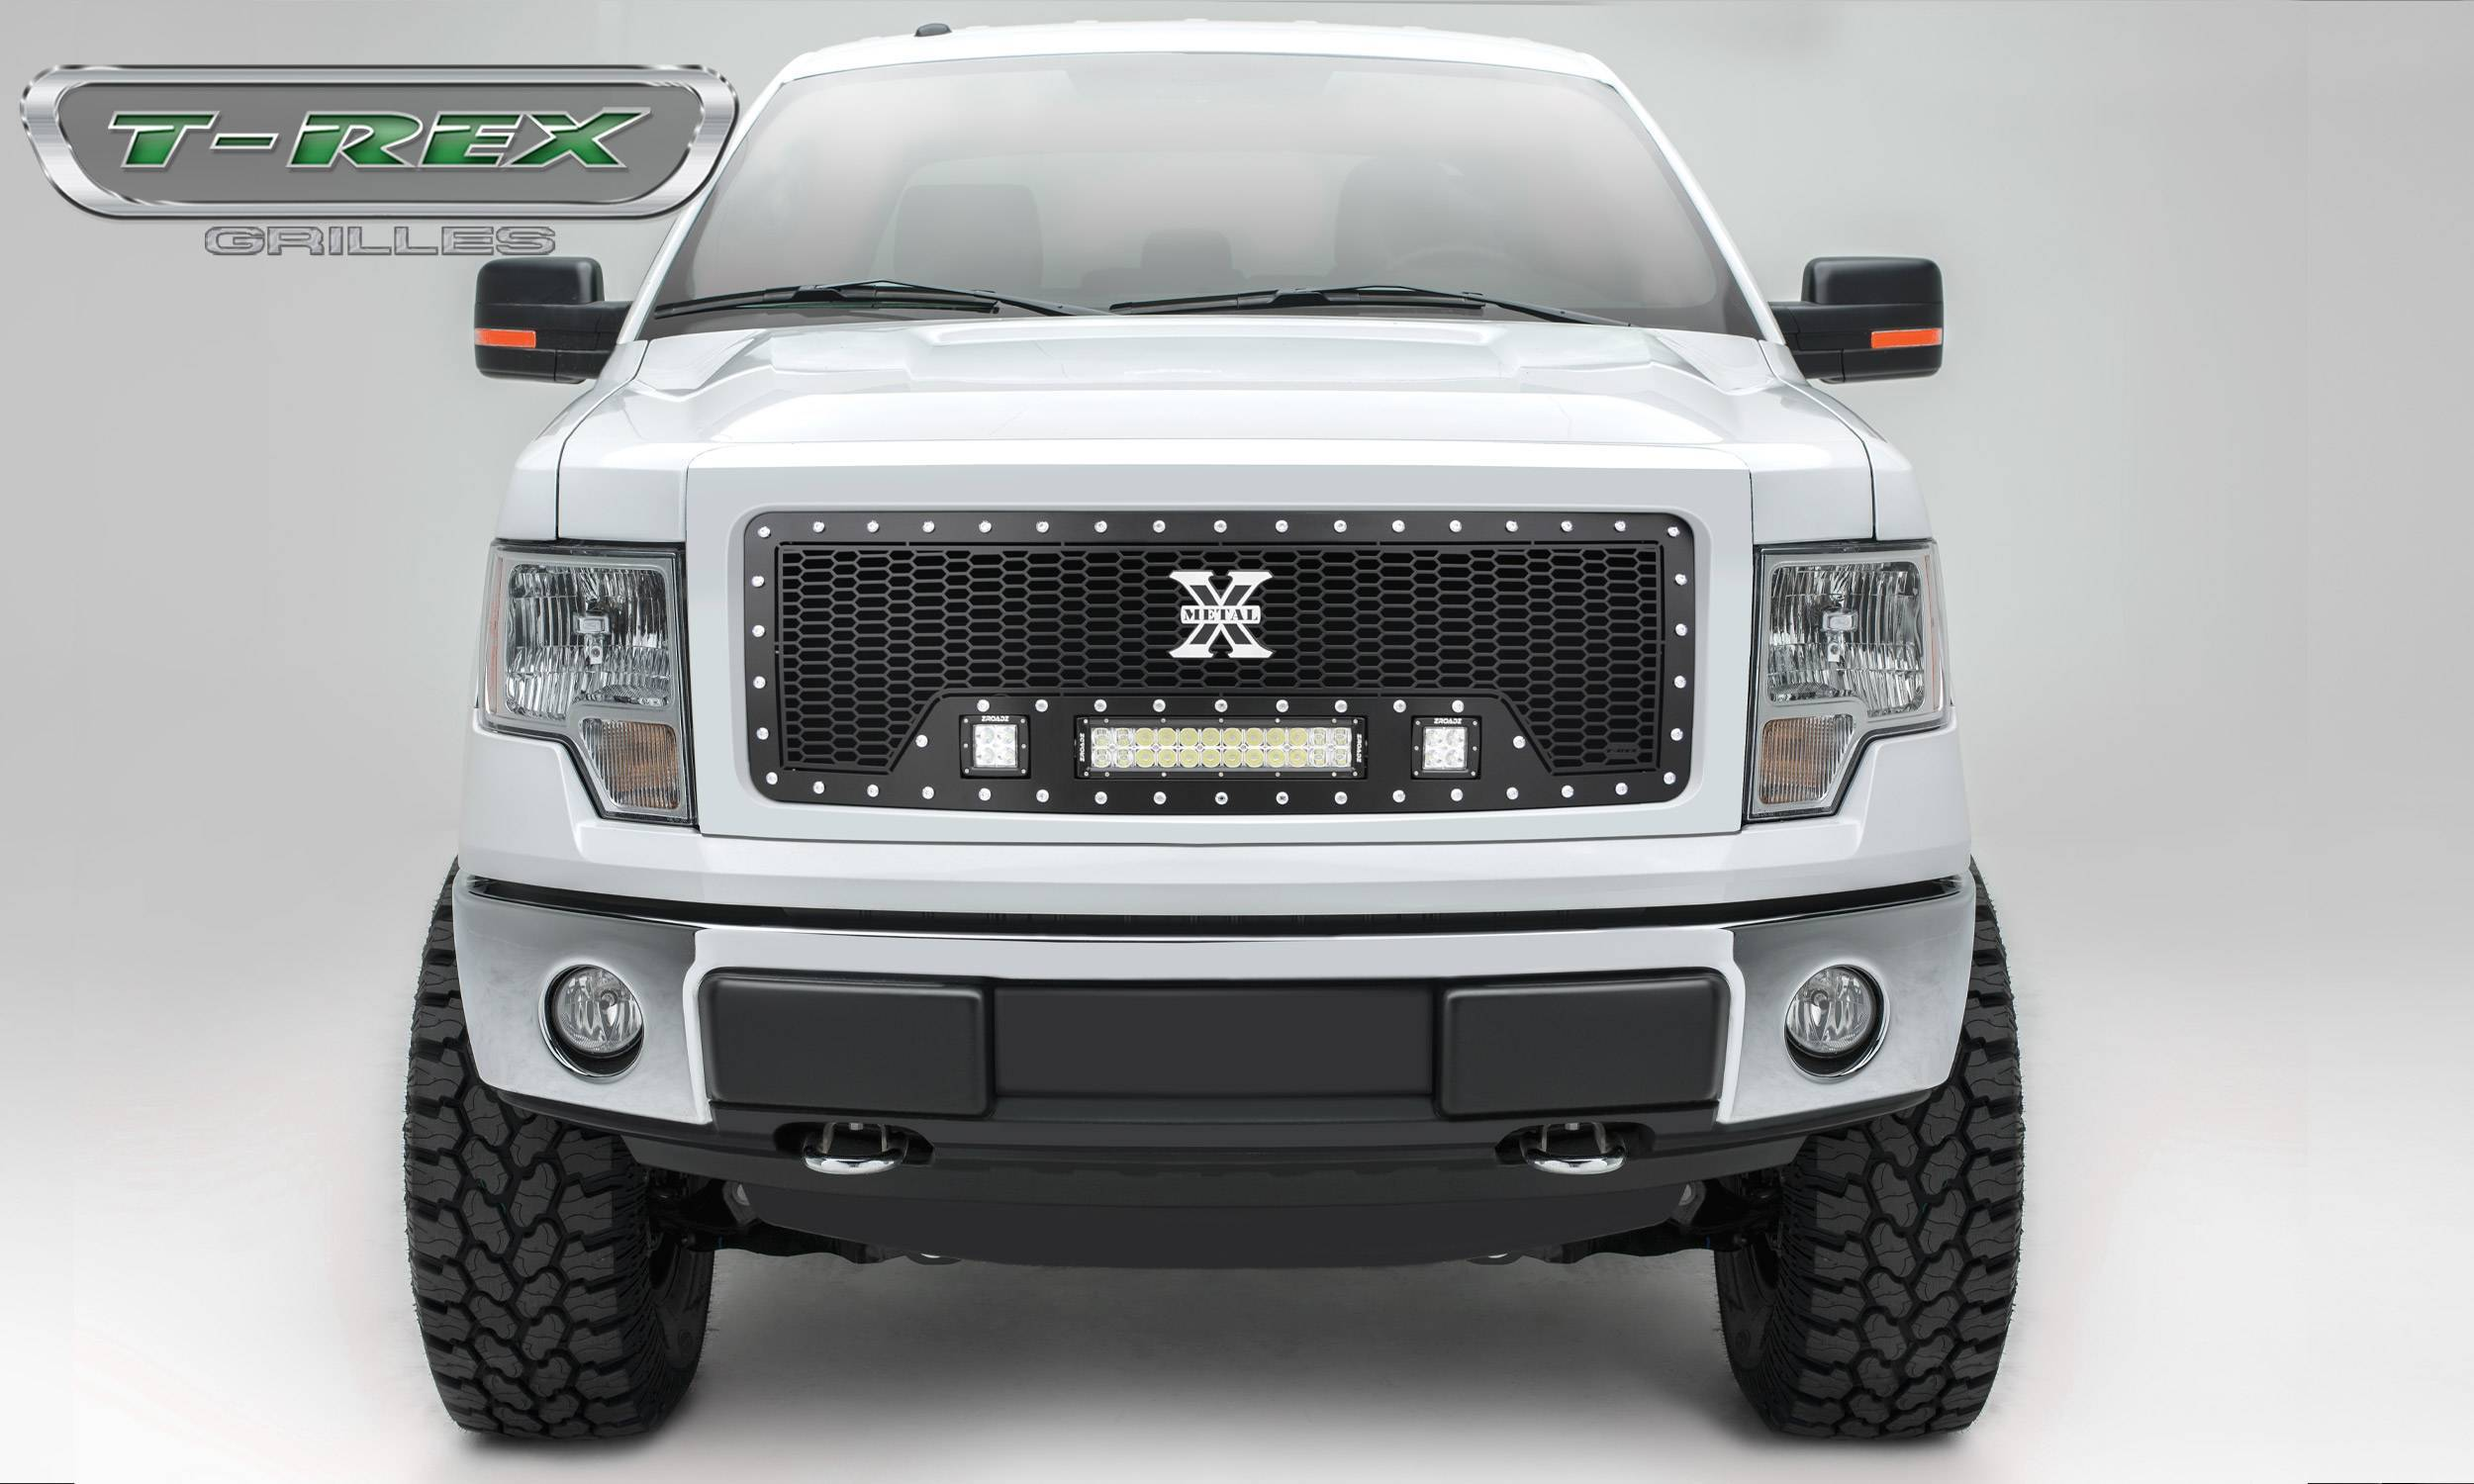 """T-REX Grilles - 2009-2012 F-150 Laser Torch Grille, Black, 1 Pc, Insert, Chrome Studs with (2) 3"""" LED Cubes and (1) 12"""" LEDs - PN #7315681"""